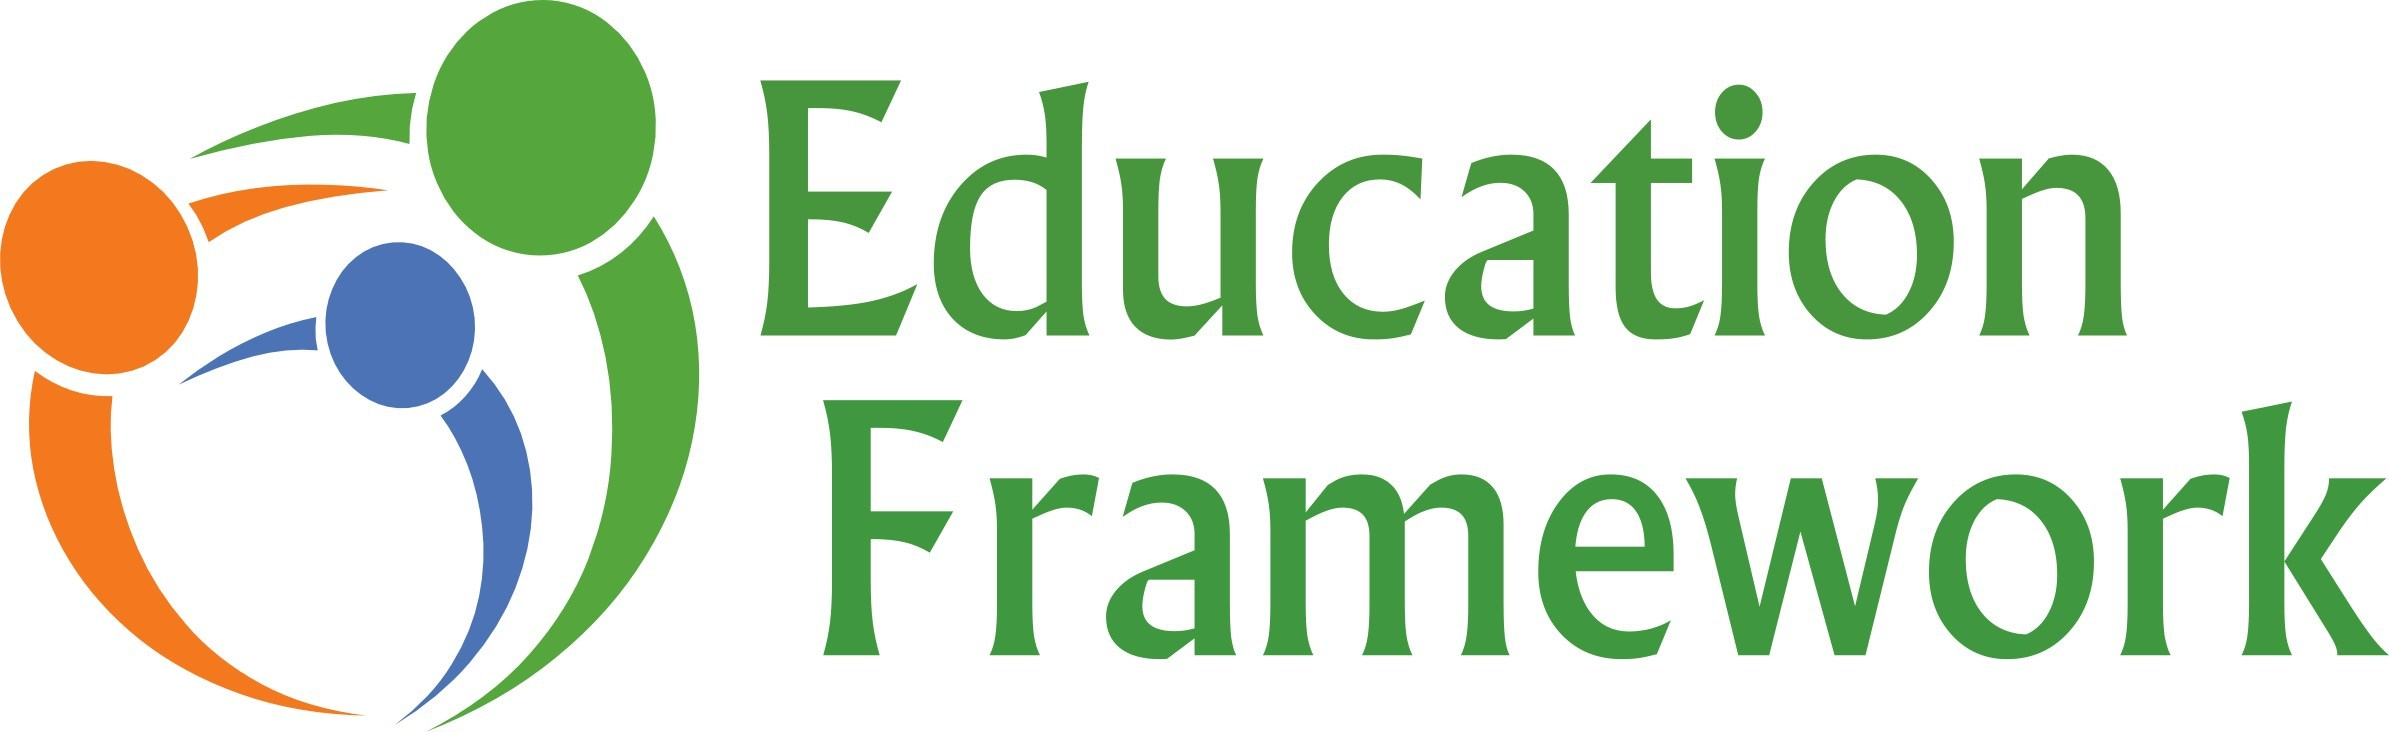 Education Framework - Student Data Privacy Management for Schools